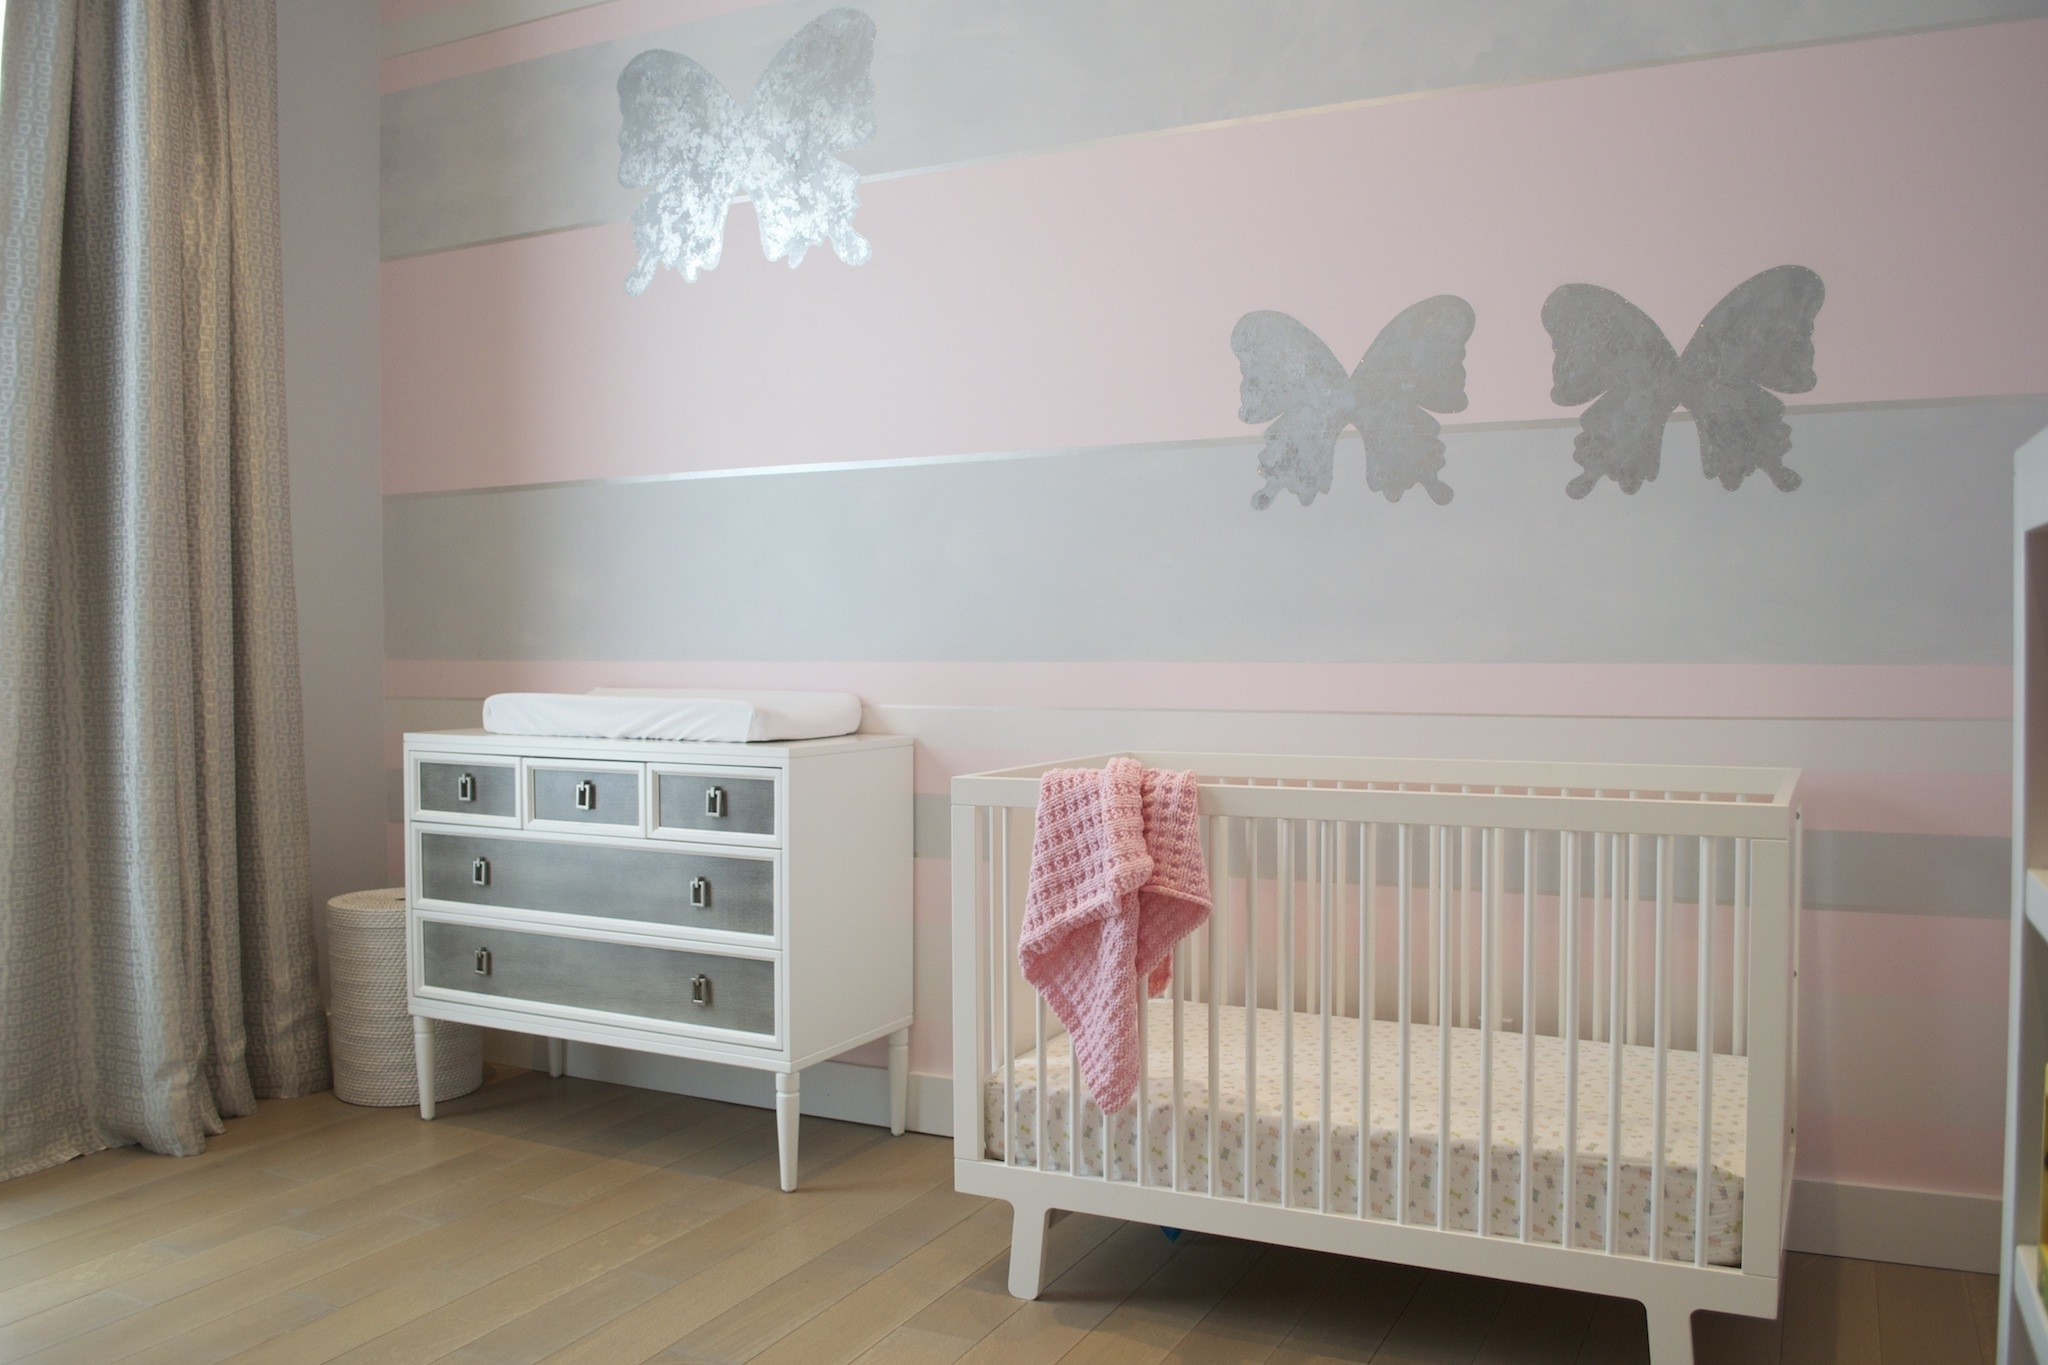 Fashionable Girl Nursery Wall Accents Regarding Design Reveal: Pink Butterfly Nursery – Project Nursery (View 3 of 15)